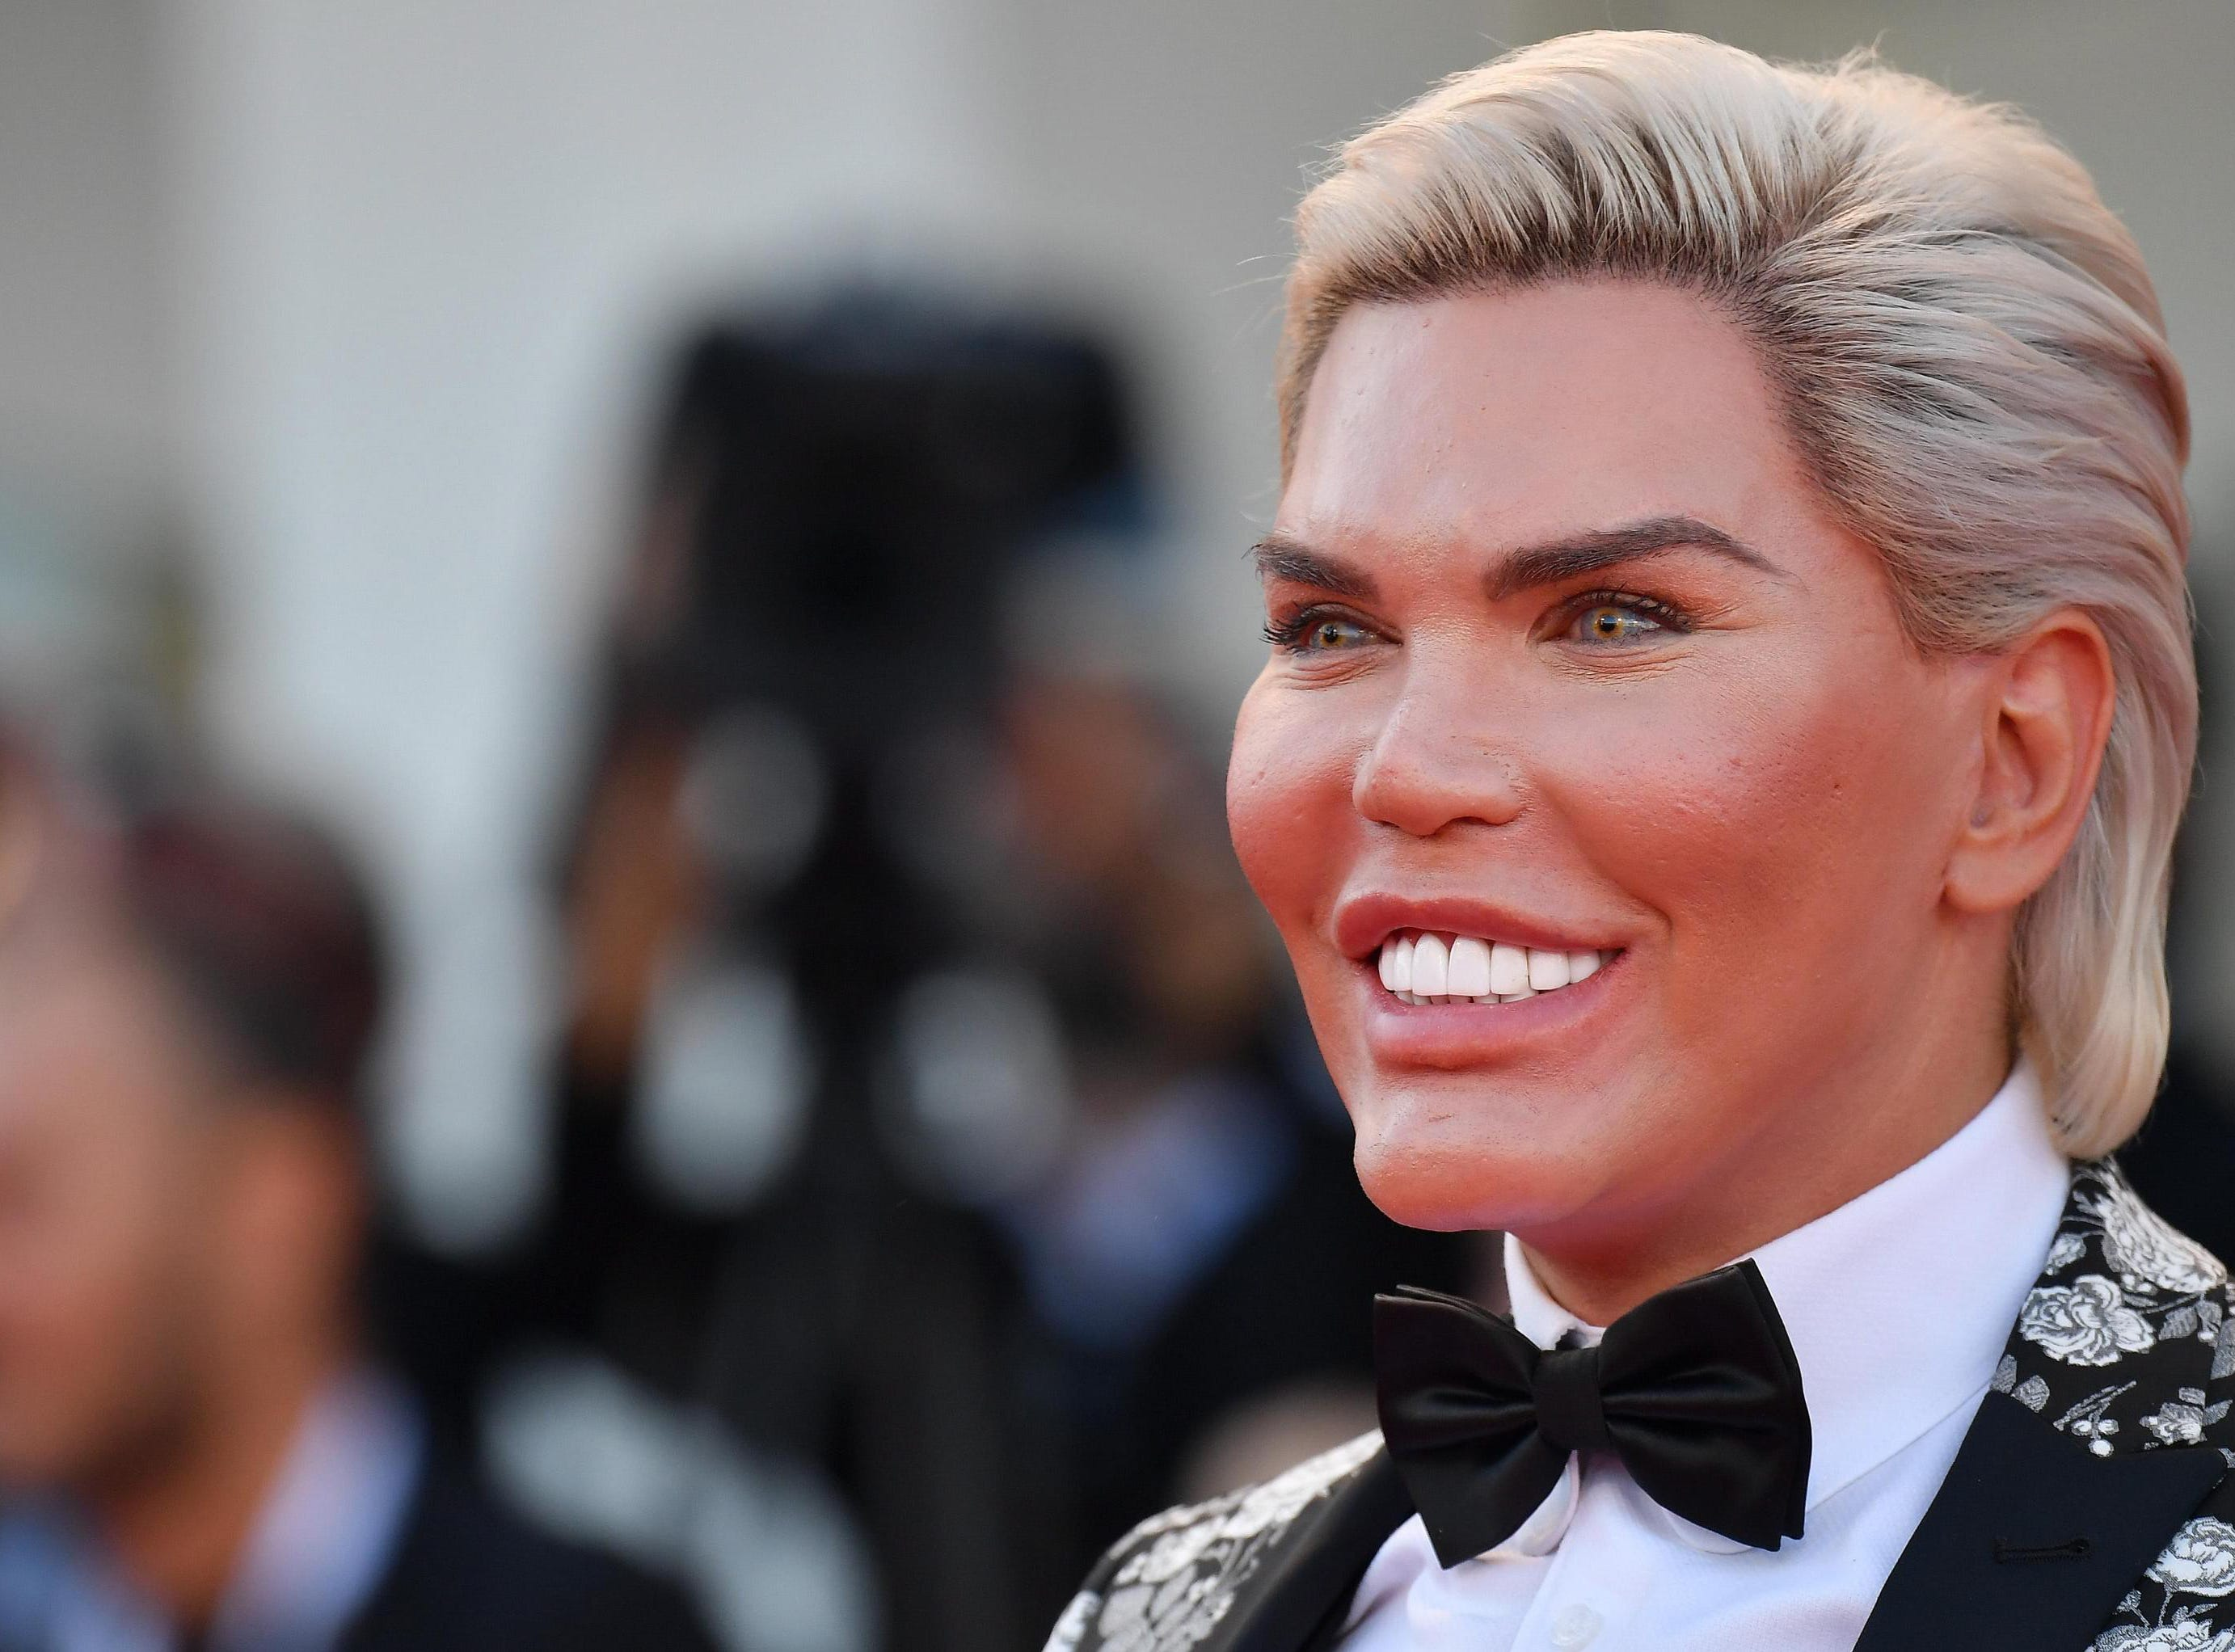 Rodrigo Alves, known as The Human Ken, arrives for the premiere of 'Vox Lux' during the 75th annual Venice International Film Festival.